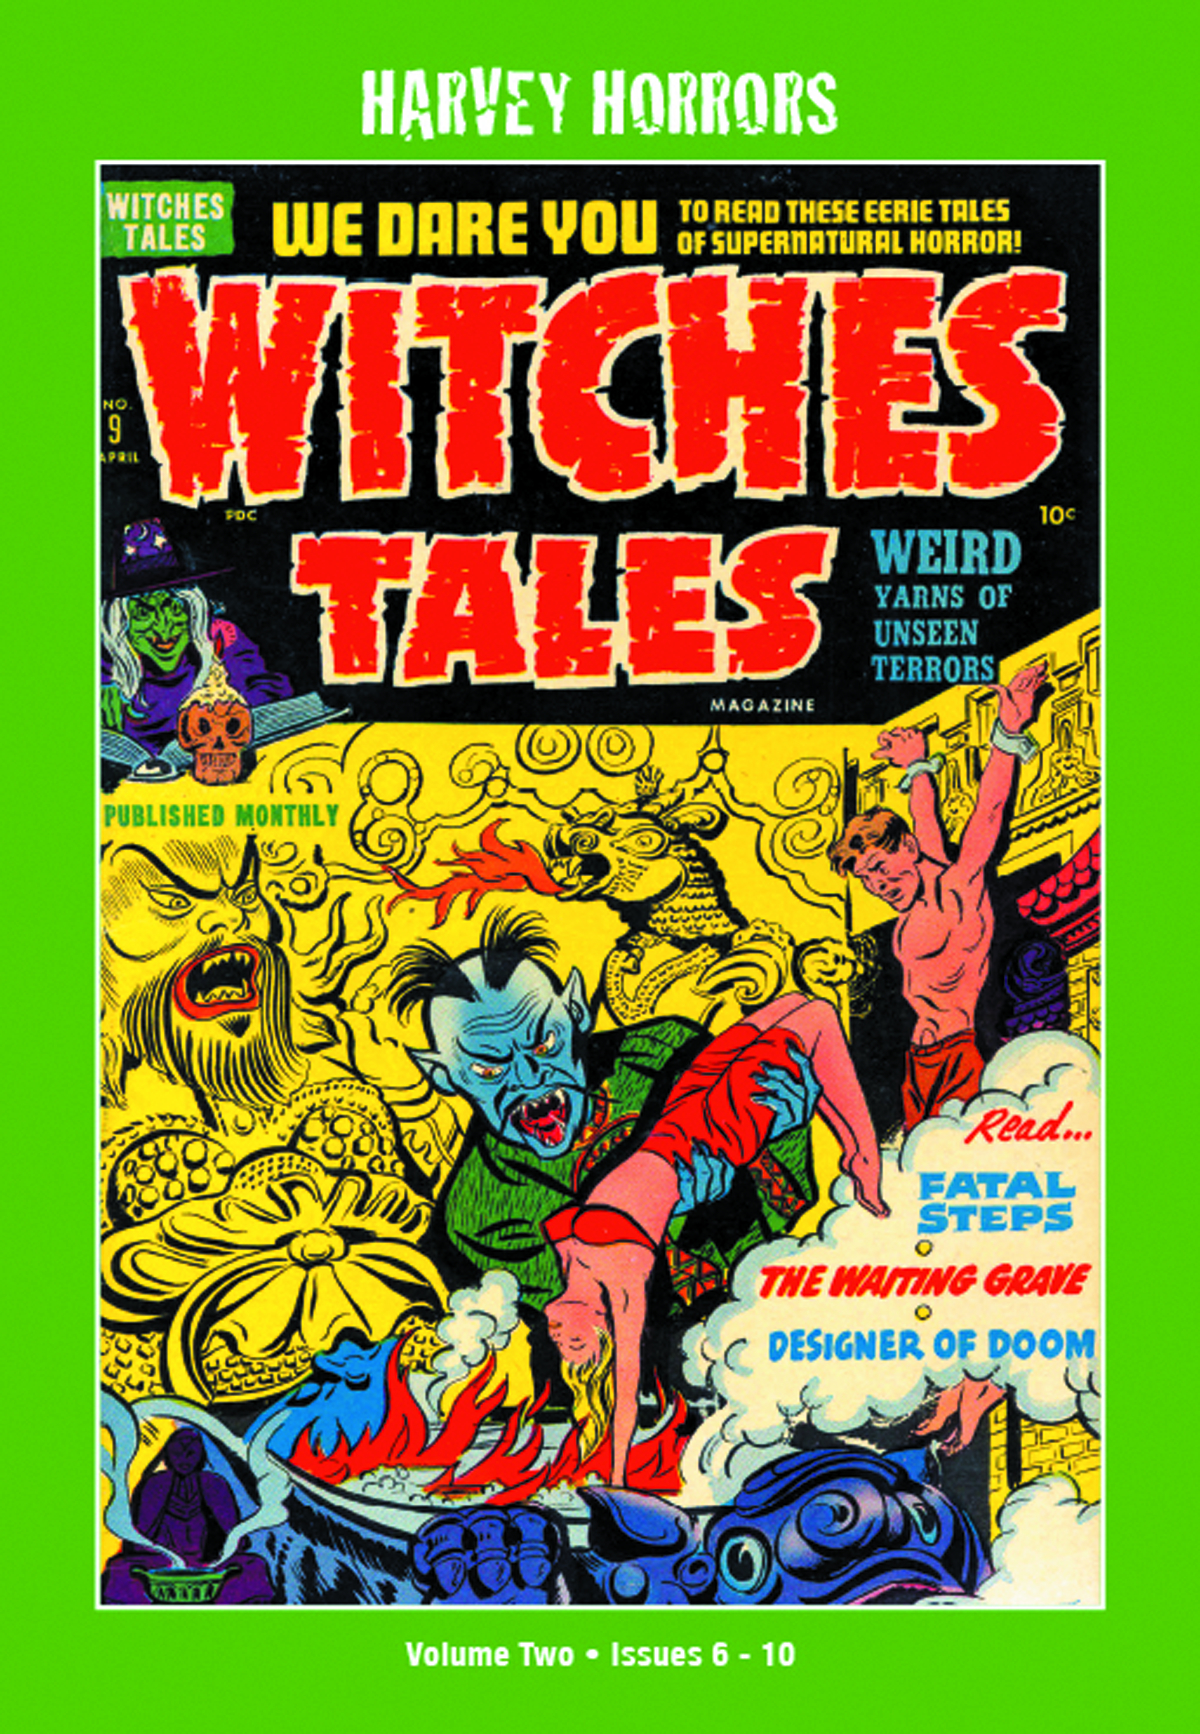 HARVEY HORRORS WITCHES TALES SOFTIE TP VOL 02